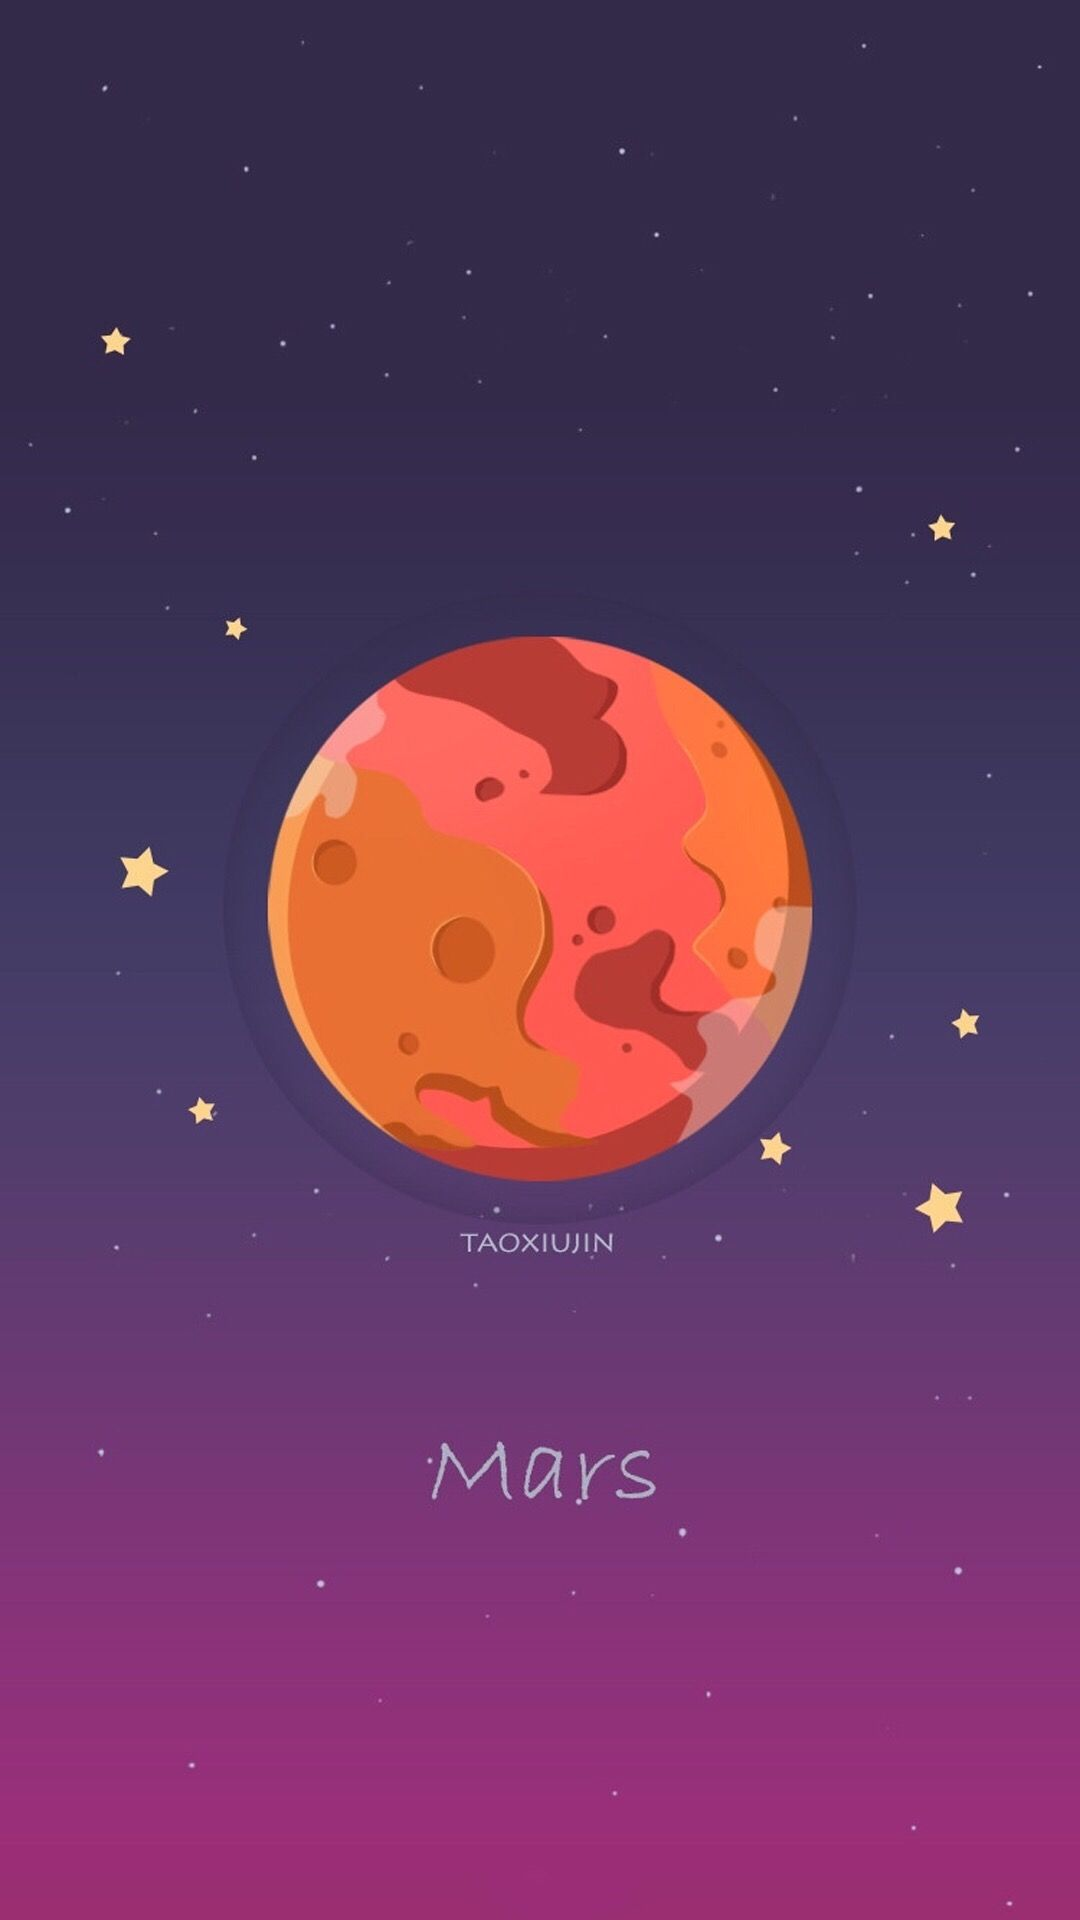 Mars iphone wallpapers wallpapers planets wallpaper - Mars wallpaper ...